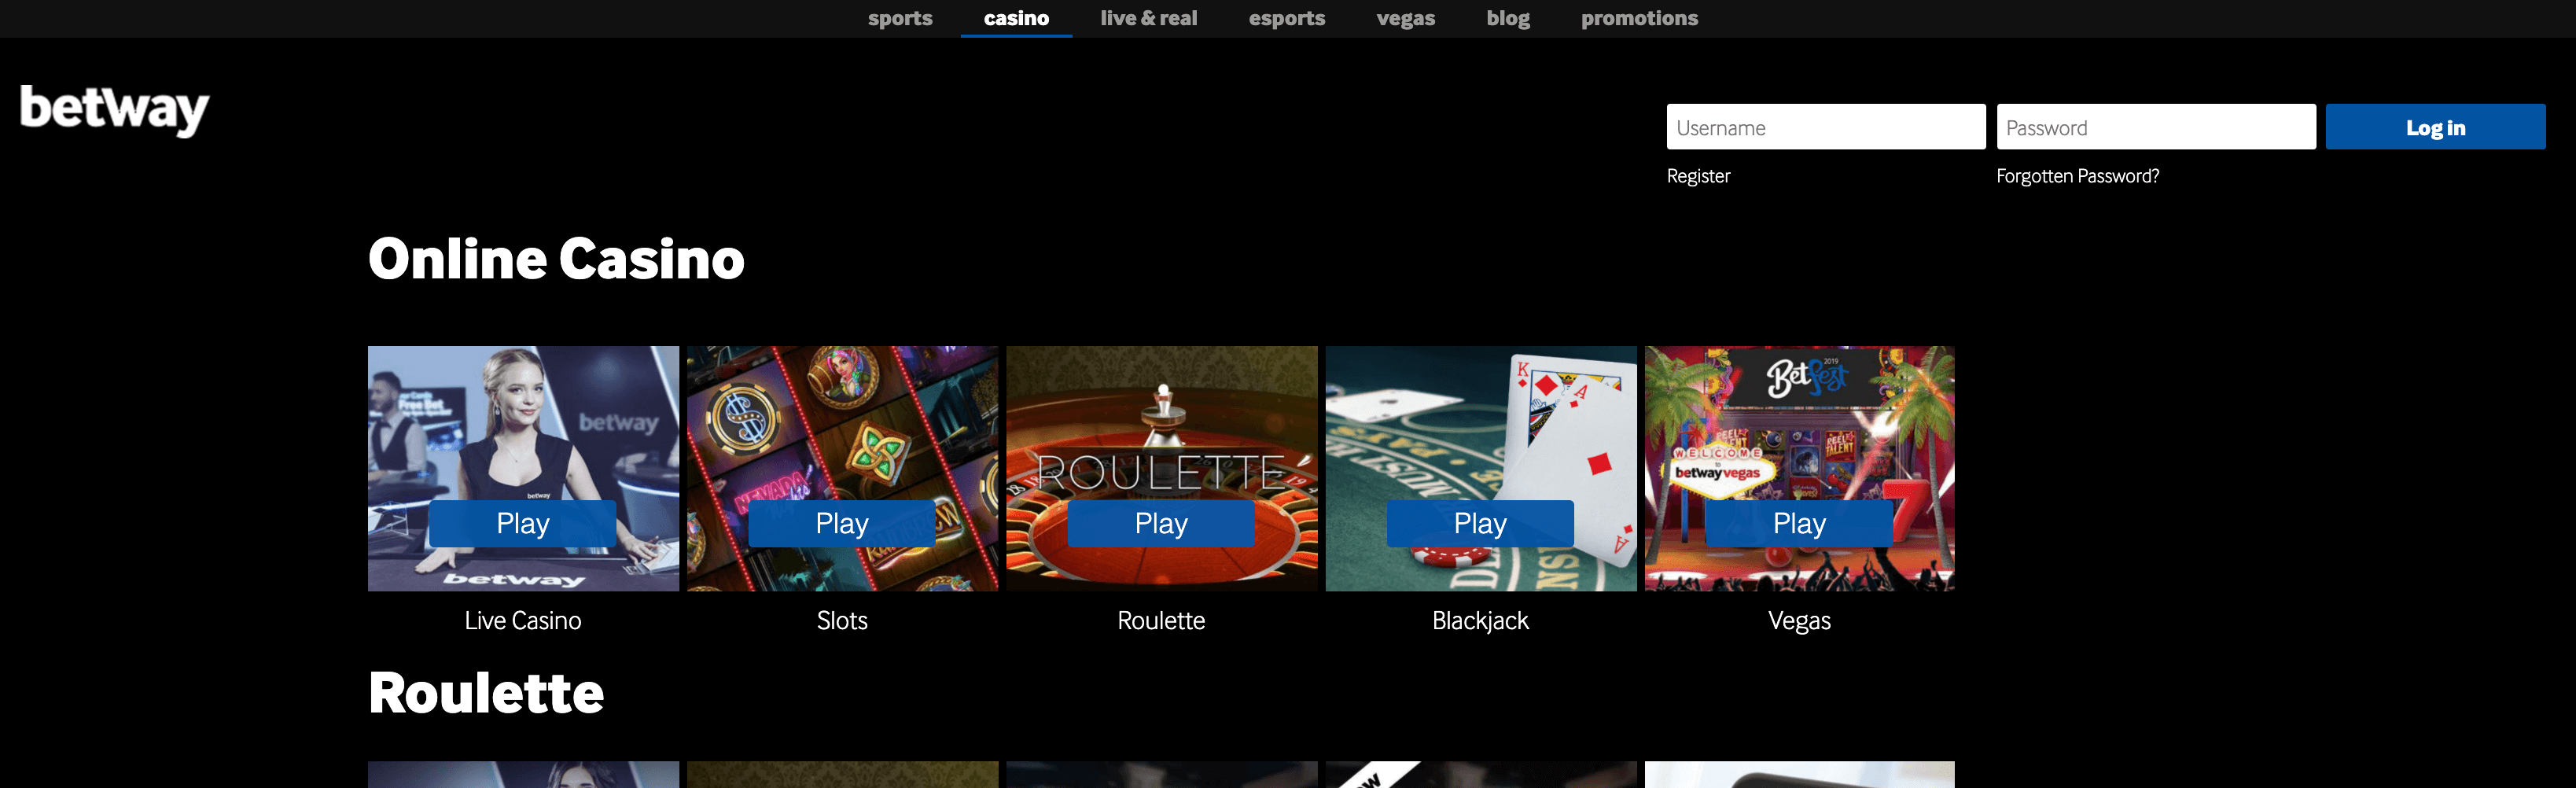 betway casino homepage